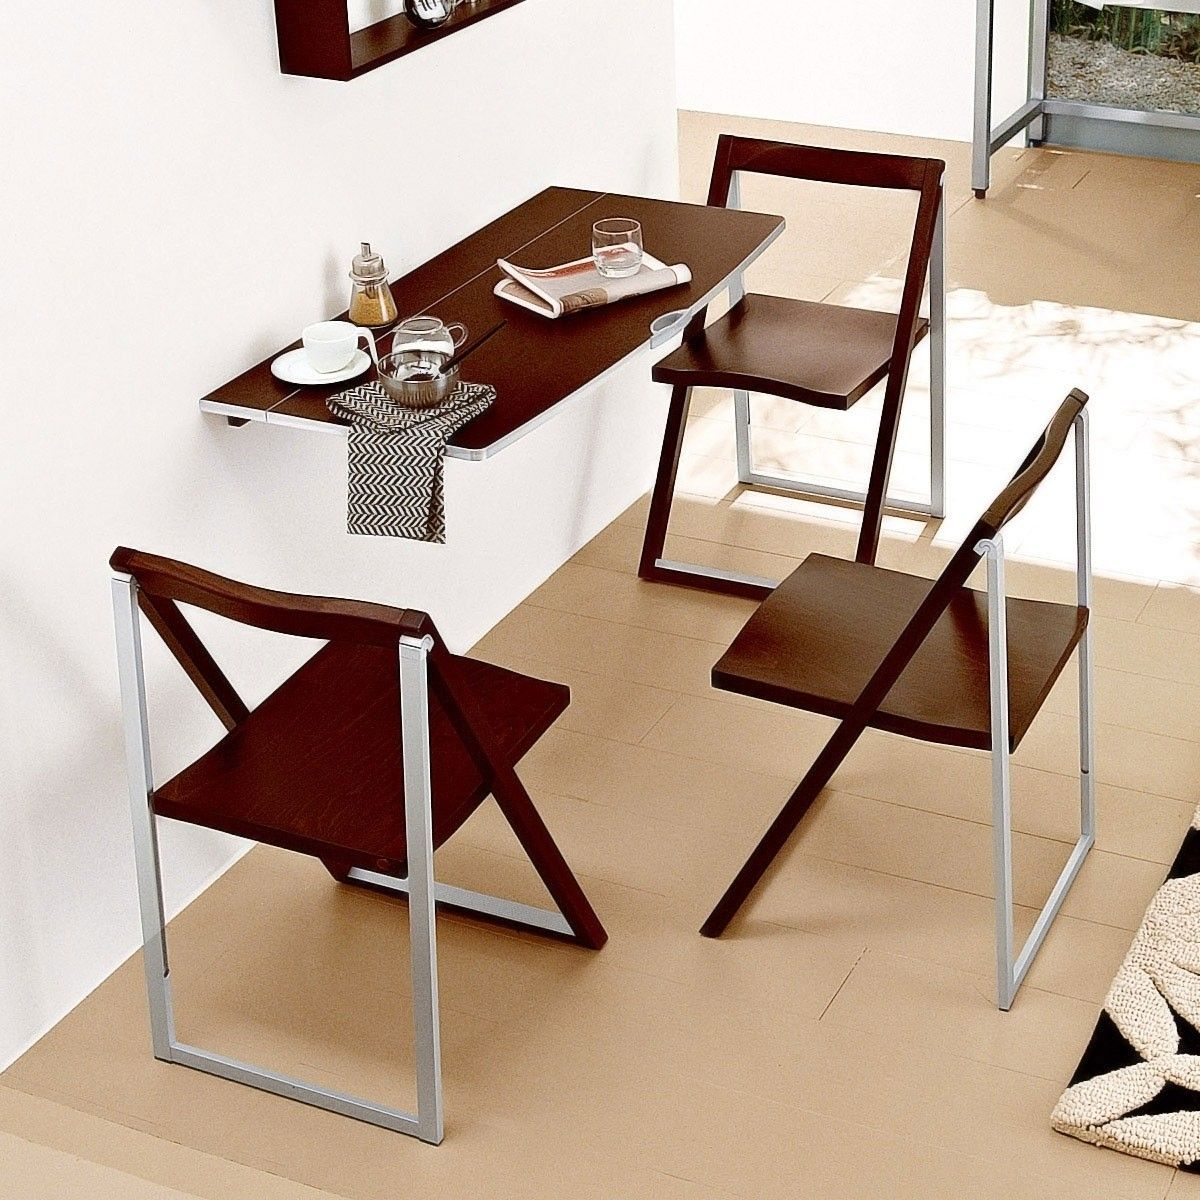 dining room folding chairs. Awesome Dining Room Design With Mounting Teak Table And Ergonomic Folded Chairs Beside Black White Area Folding D